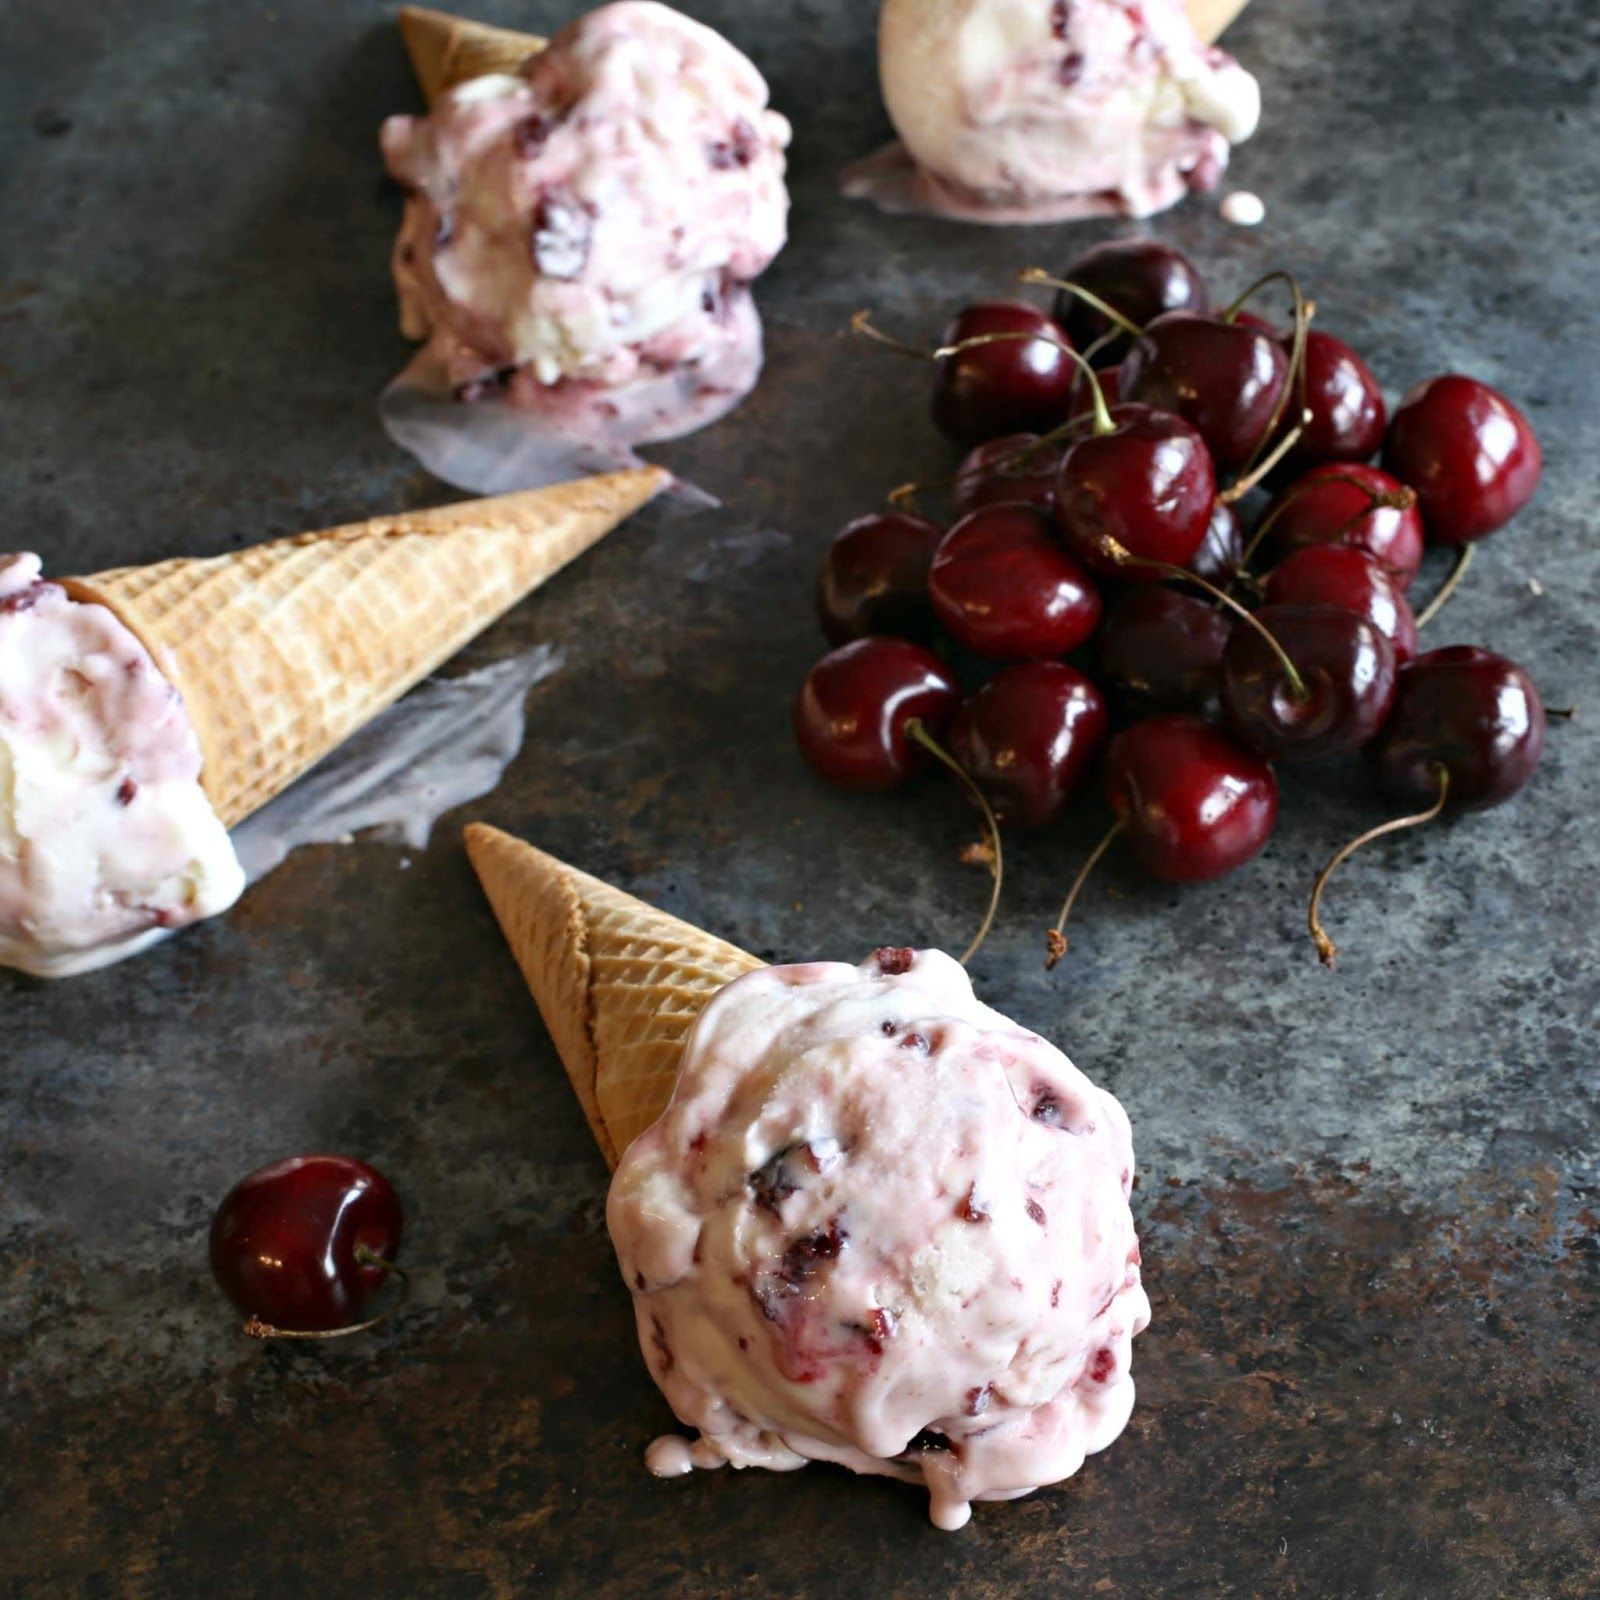 Ice cream made with milk, cream and yogurt cheese, swirled with a cherry compote.